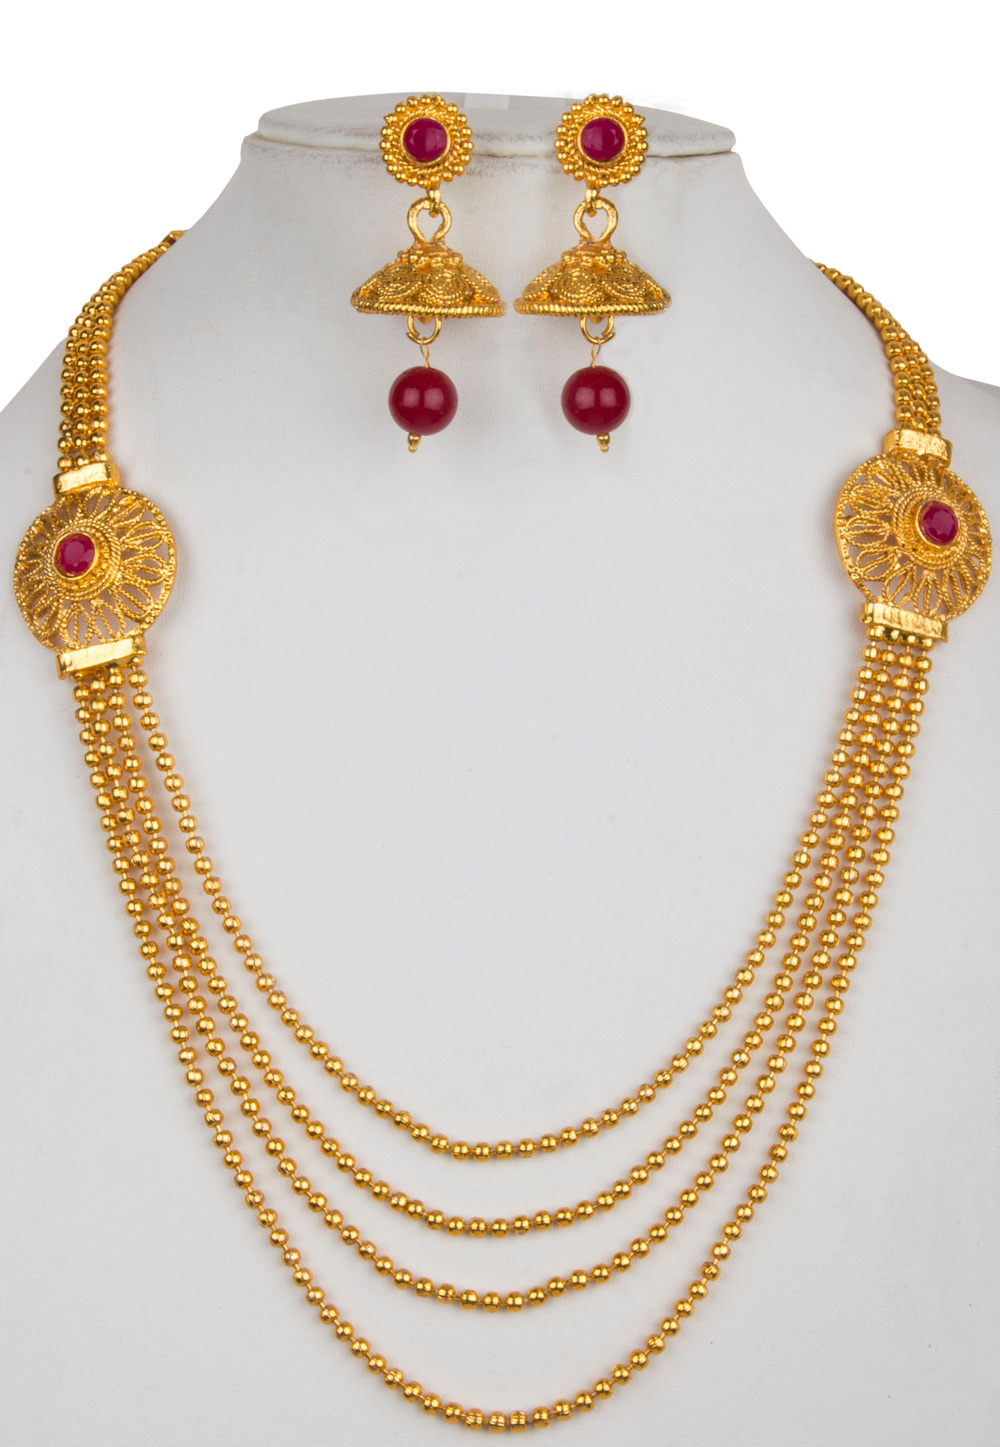 Golden Alloy Necklace With Earrings 157147